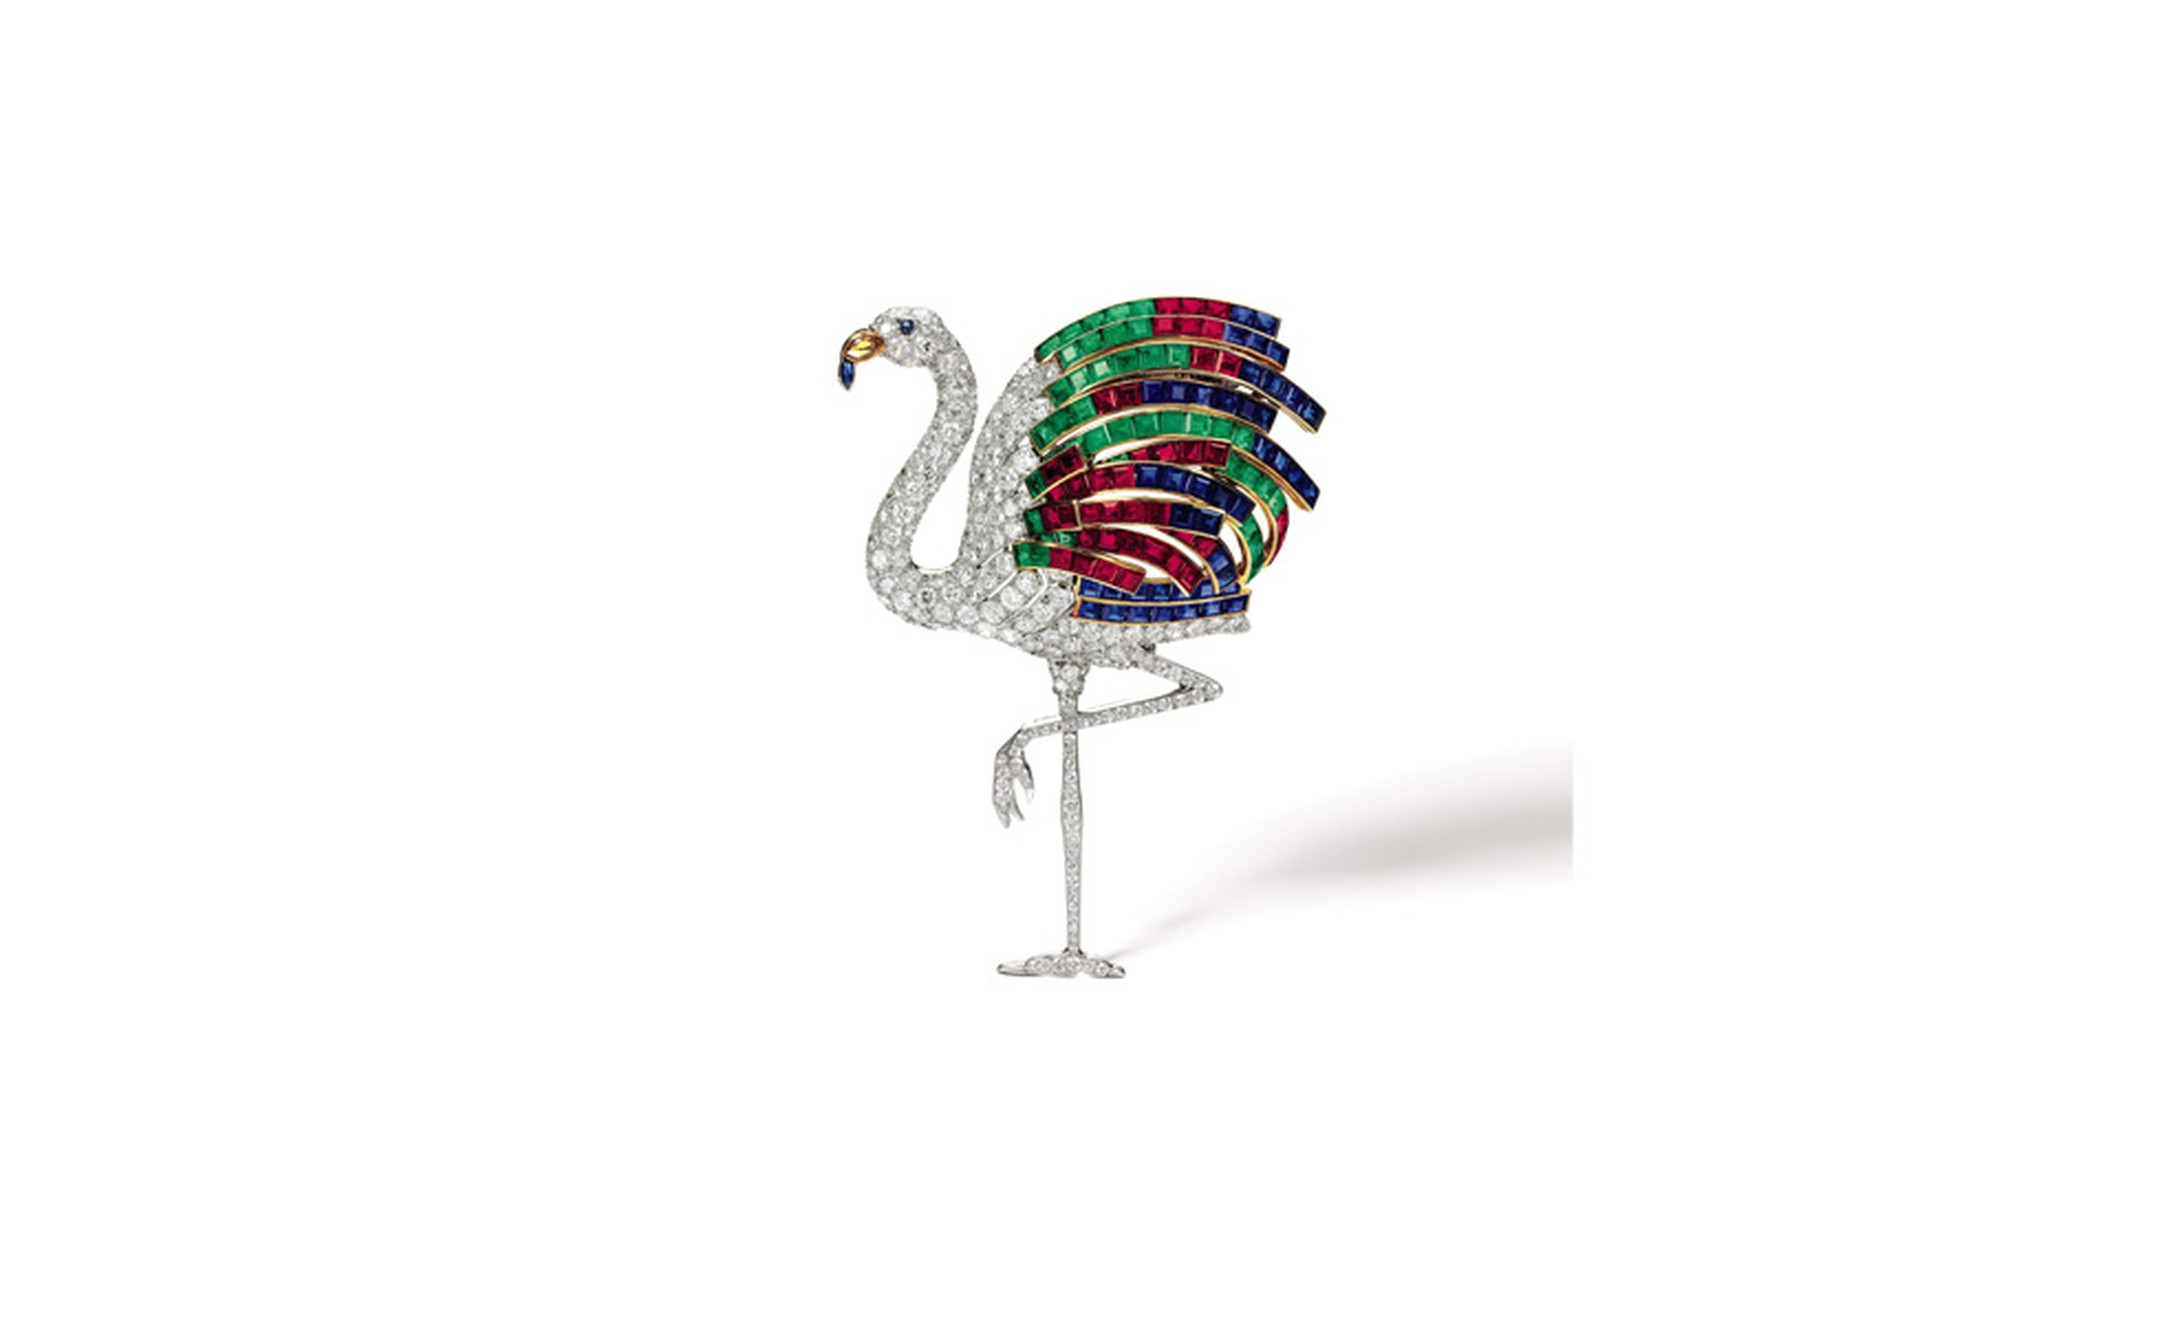 Sotheby's Lot 20 Cartier Flamingo clip sold for £1,721,250